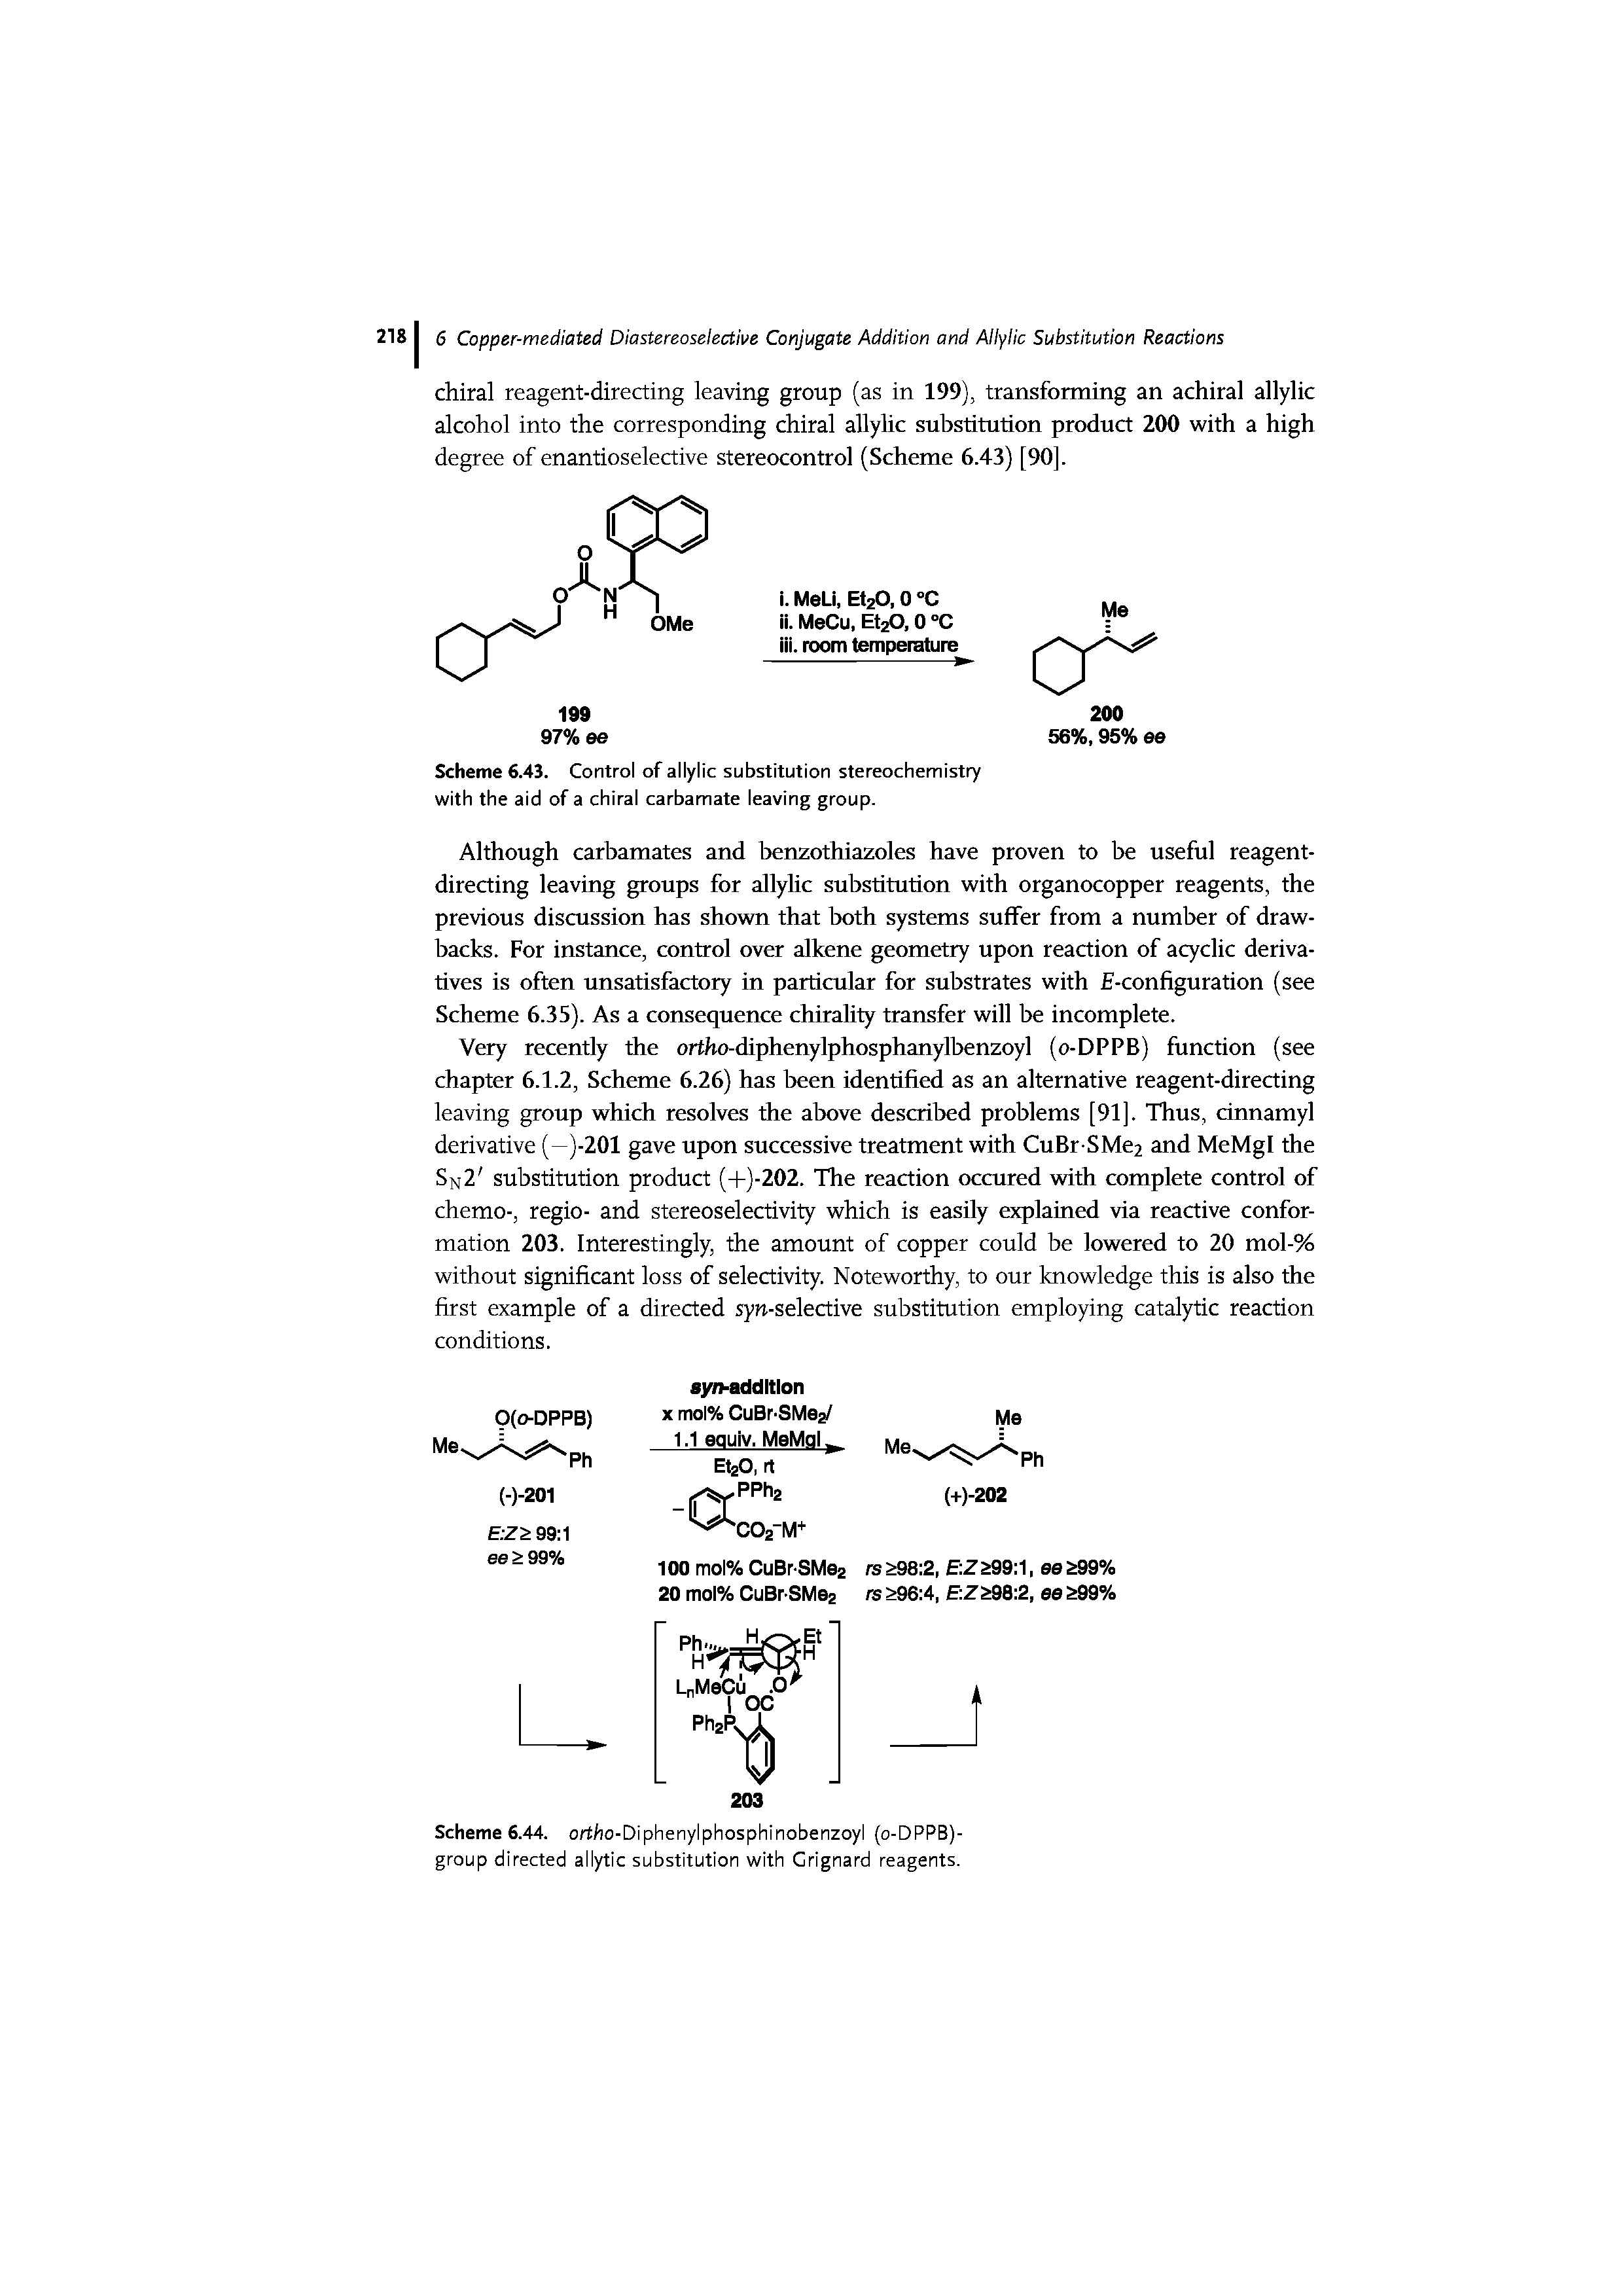 "Scheme 6.43. Control of <a href=""/info/allylic_substitution_stereochemistry"">allylic substitution stereochemistry</a> with the aid of a <a href=""/info/chiral_carbamates"">chiral carbamate</a> leaving group."